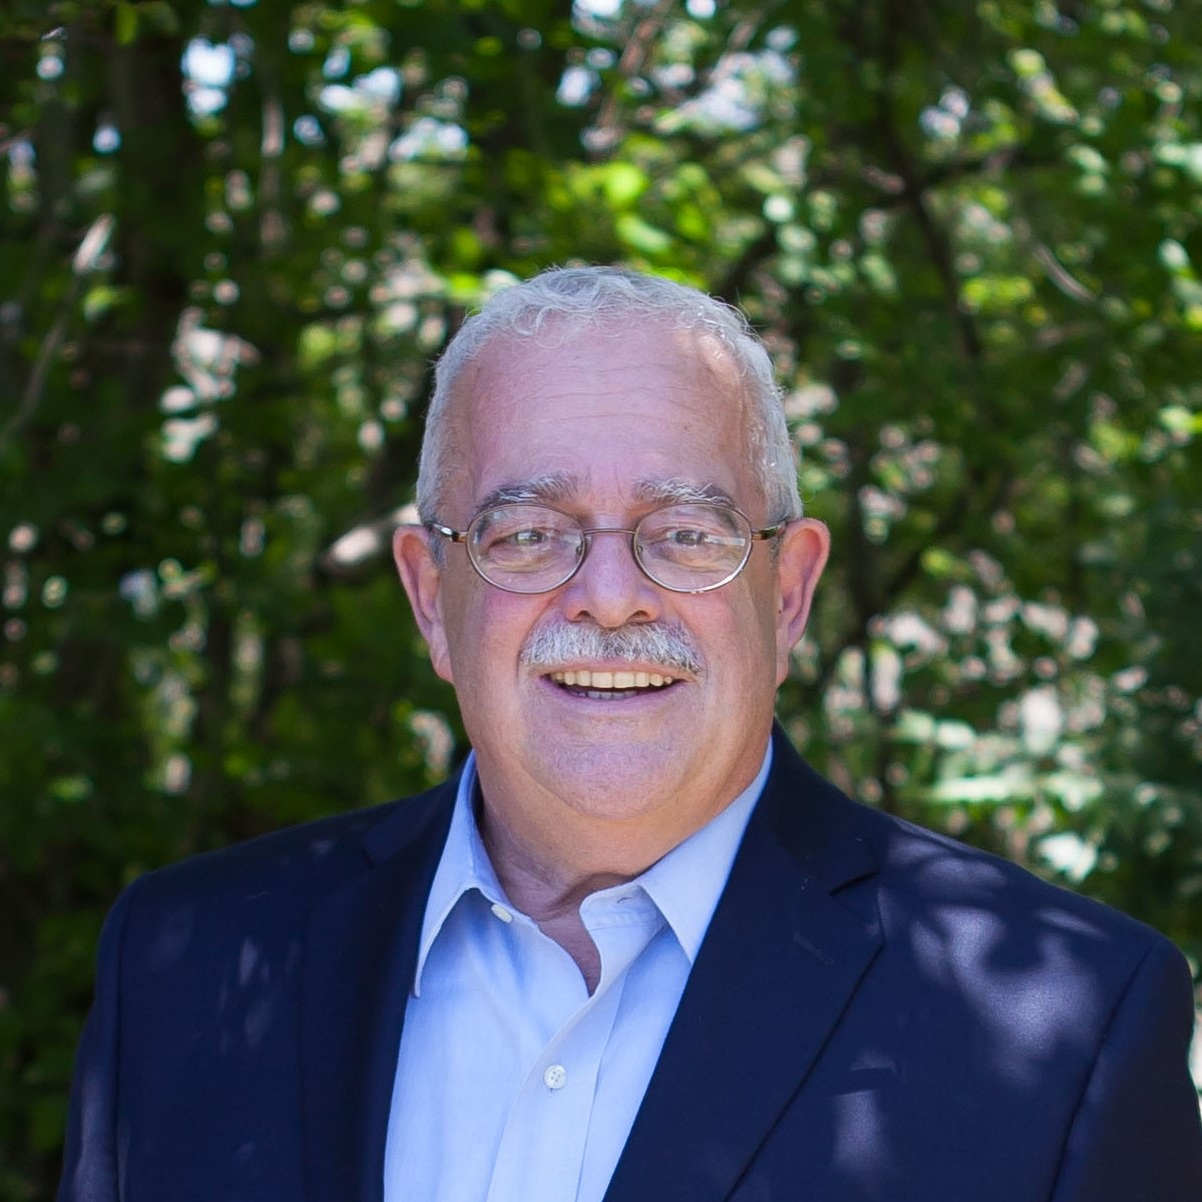 """I've known Rodney Lusk for over 20 years. During my time as Providence Supervisor I depended on Rodney to handle some of the most critical issues that came through my office. He's a dynamic and innovative leader, with deep roots in our community. He's the perfect choice to be the next Lee District Supervisor.""  -Congressman Gerry Connolly"